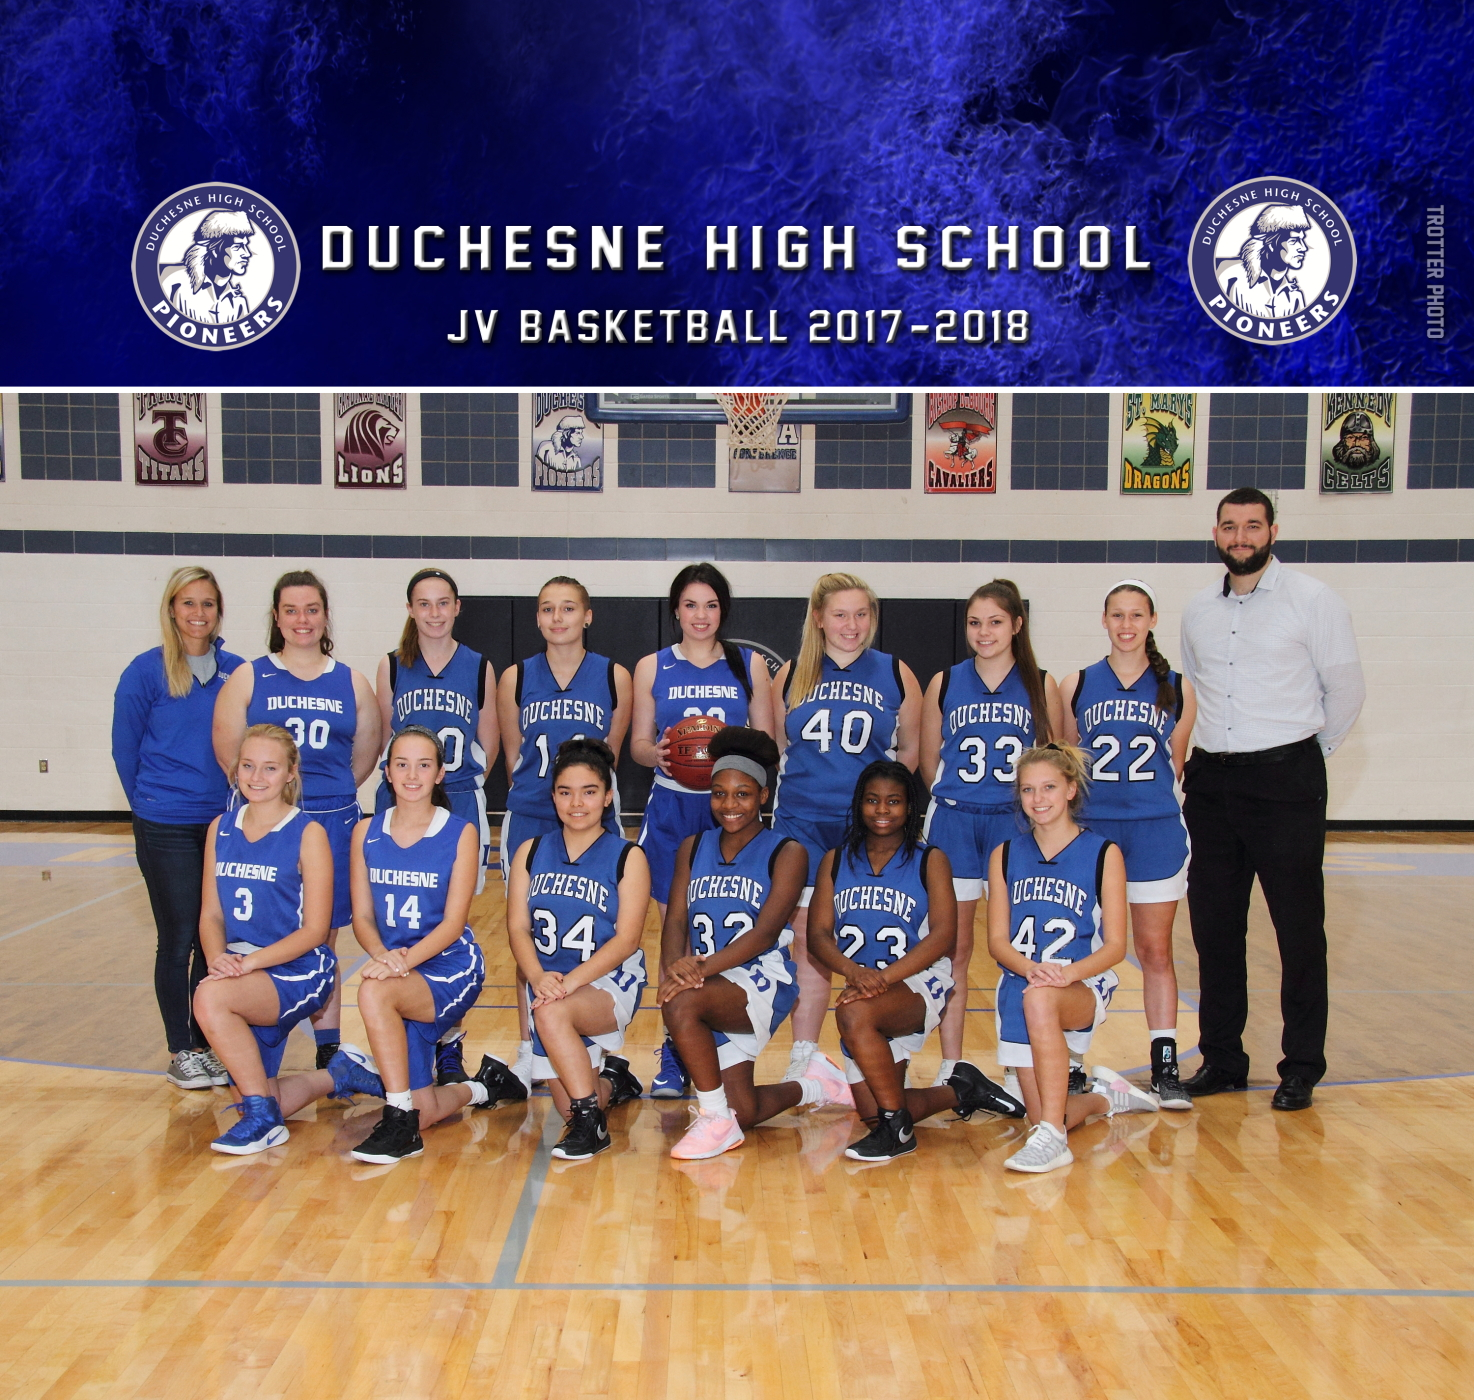 Duchesne High School Mo Duchesne High School Girls Basketball